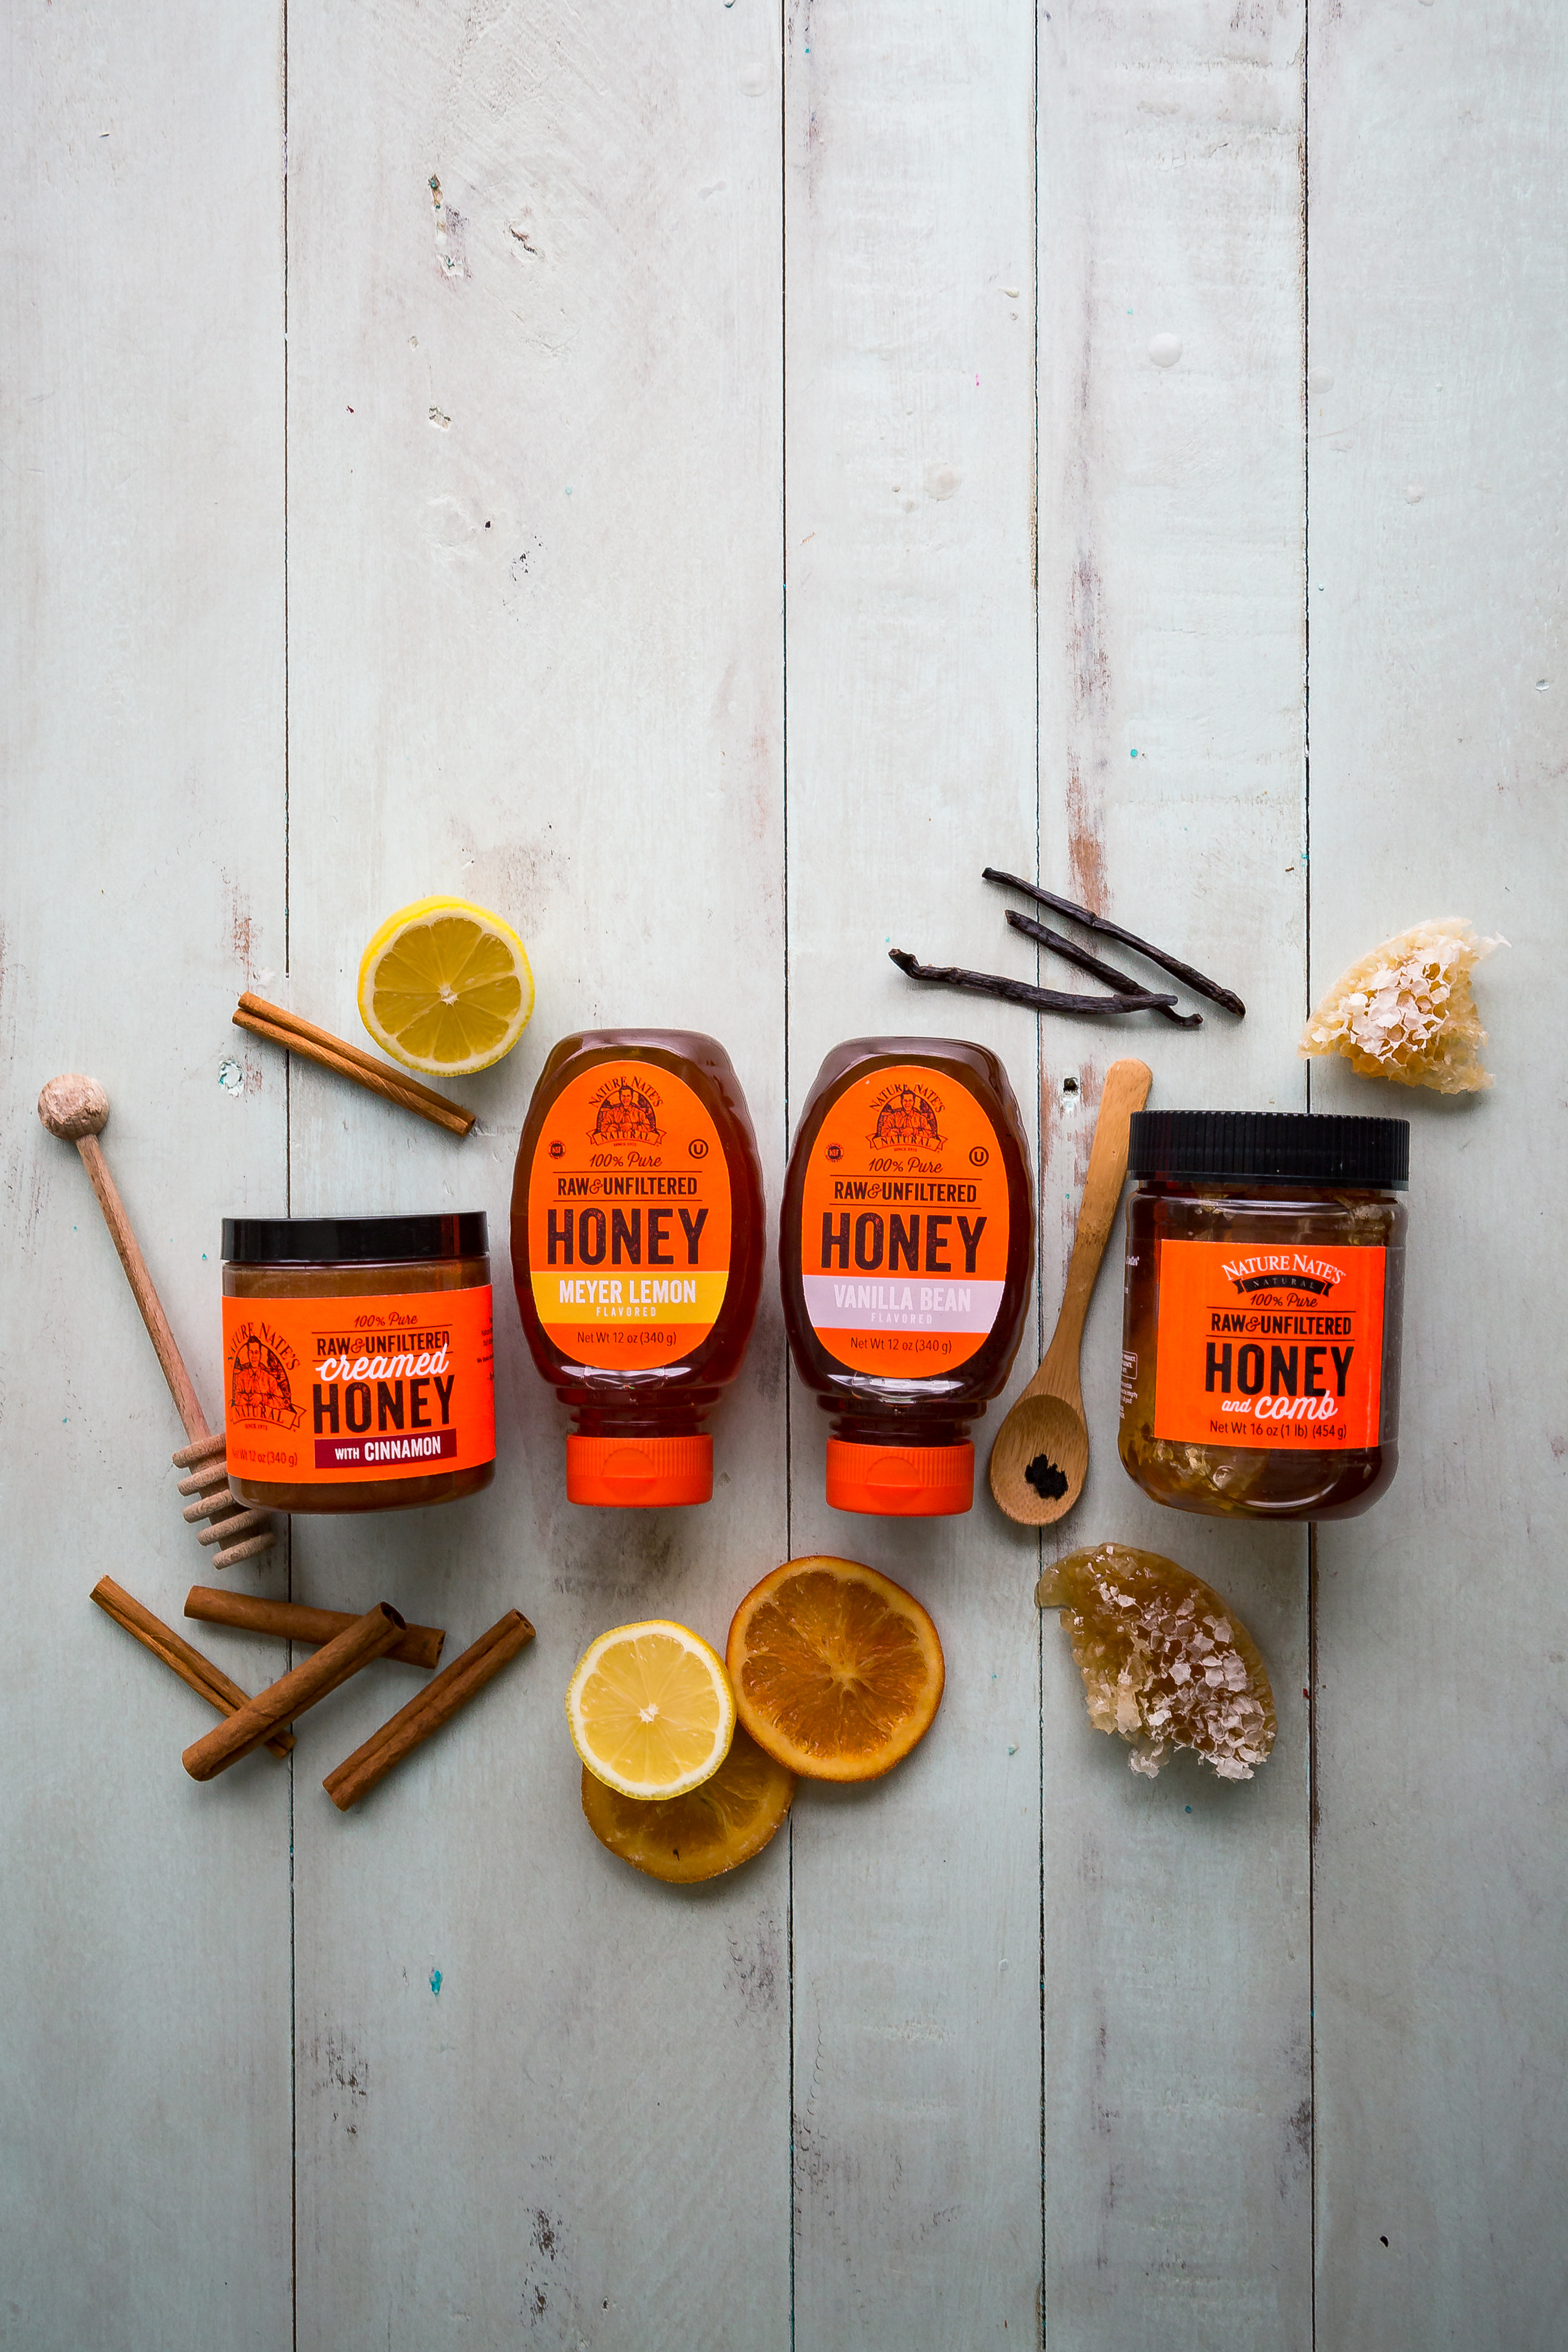 Nature Nate's Honey Exemplifies Product Innovation with Launch of New Products (Photo: Business Wire)